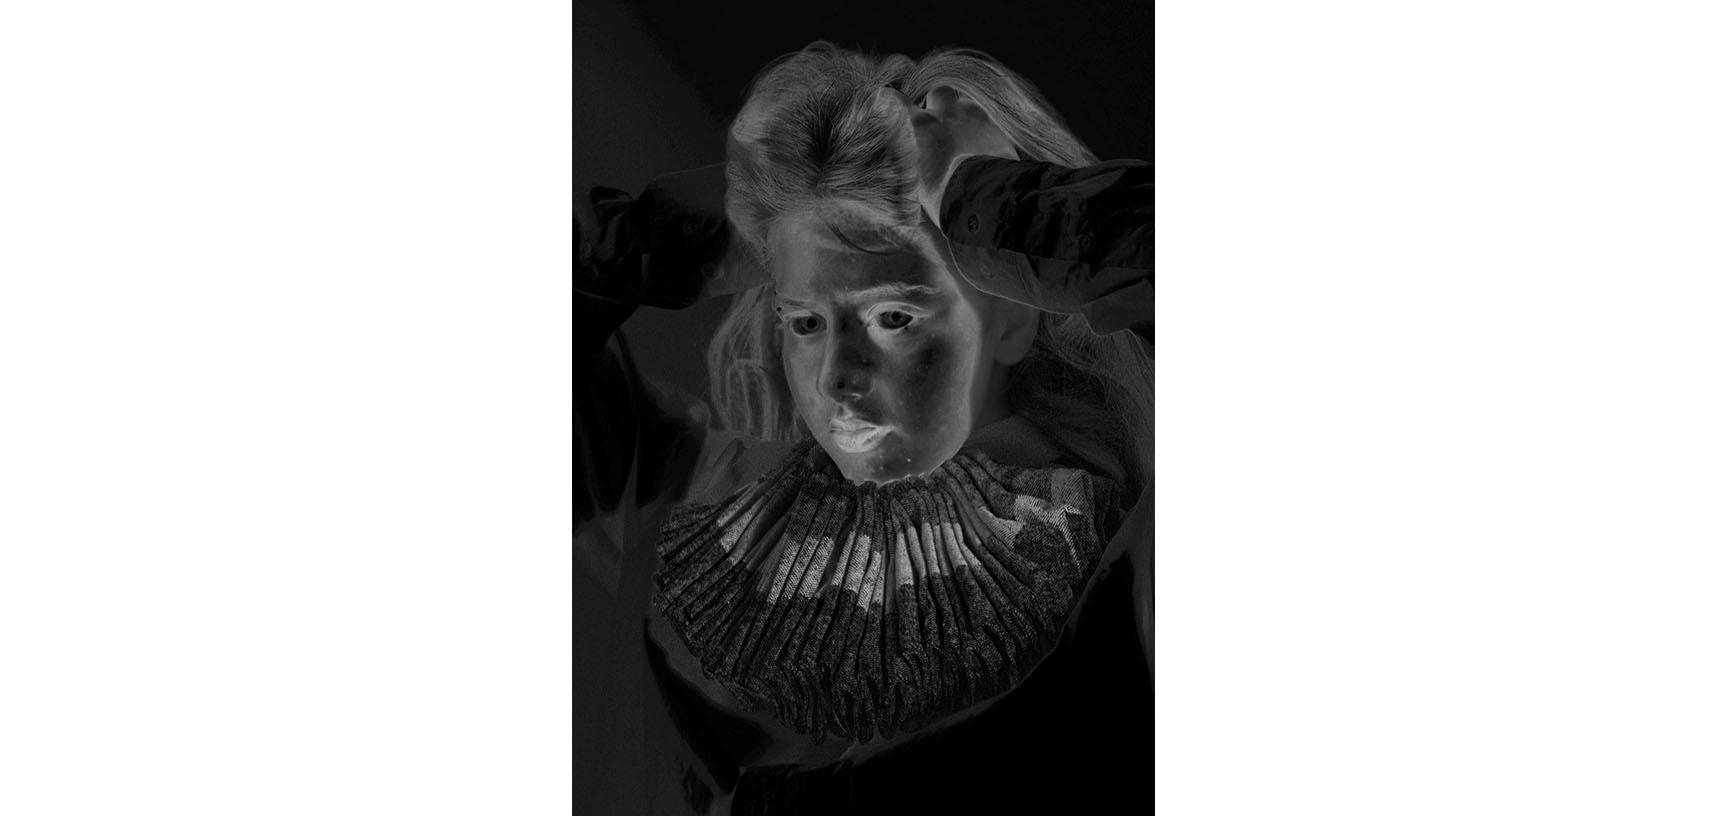 A negative image of a woman's face - she puts her hands through her hair and looks to the side of the camera